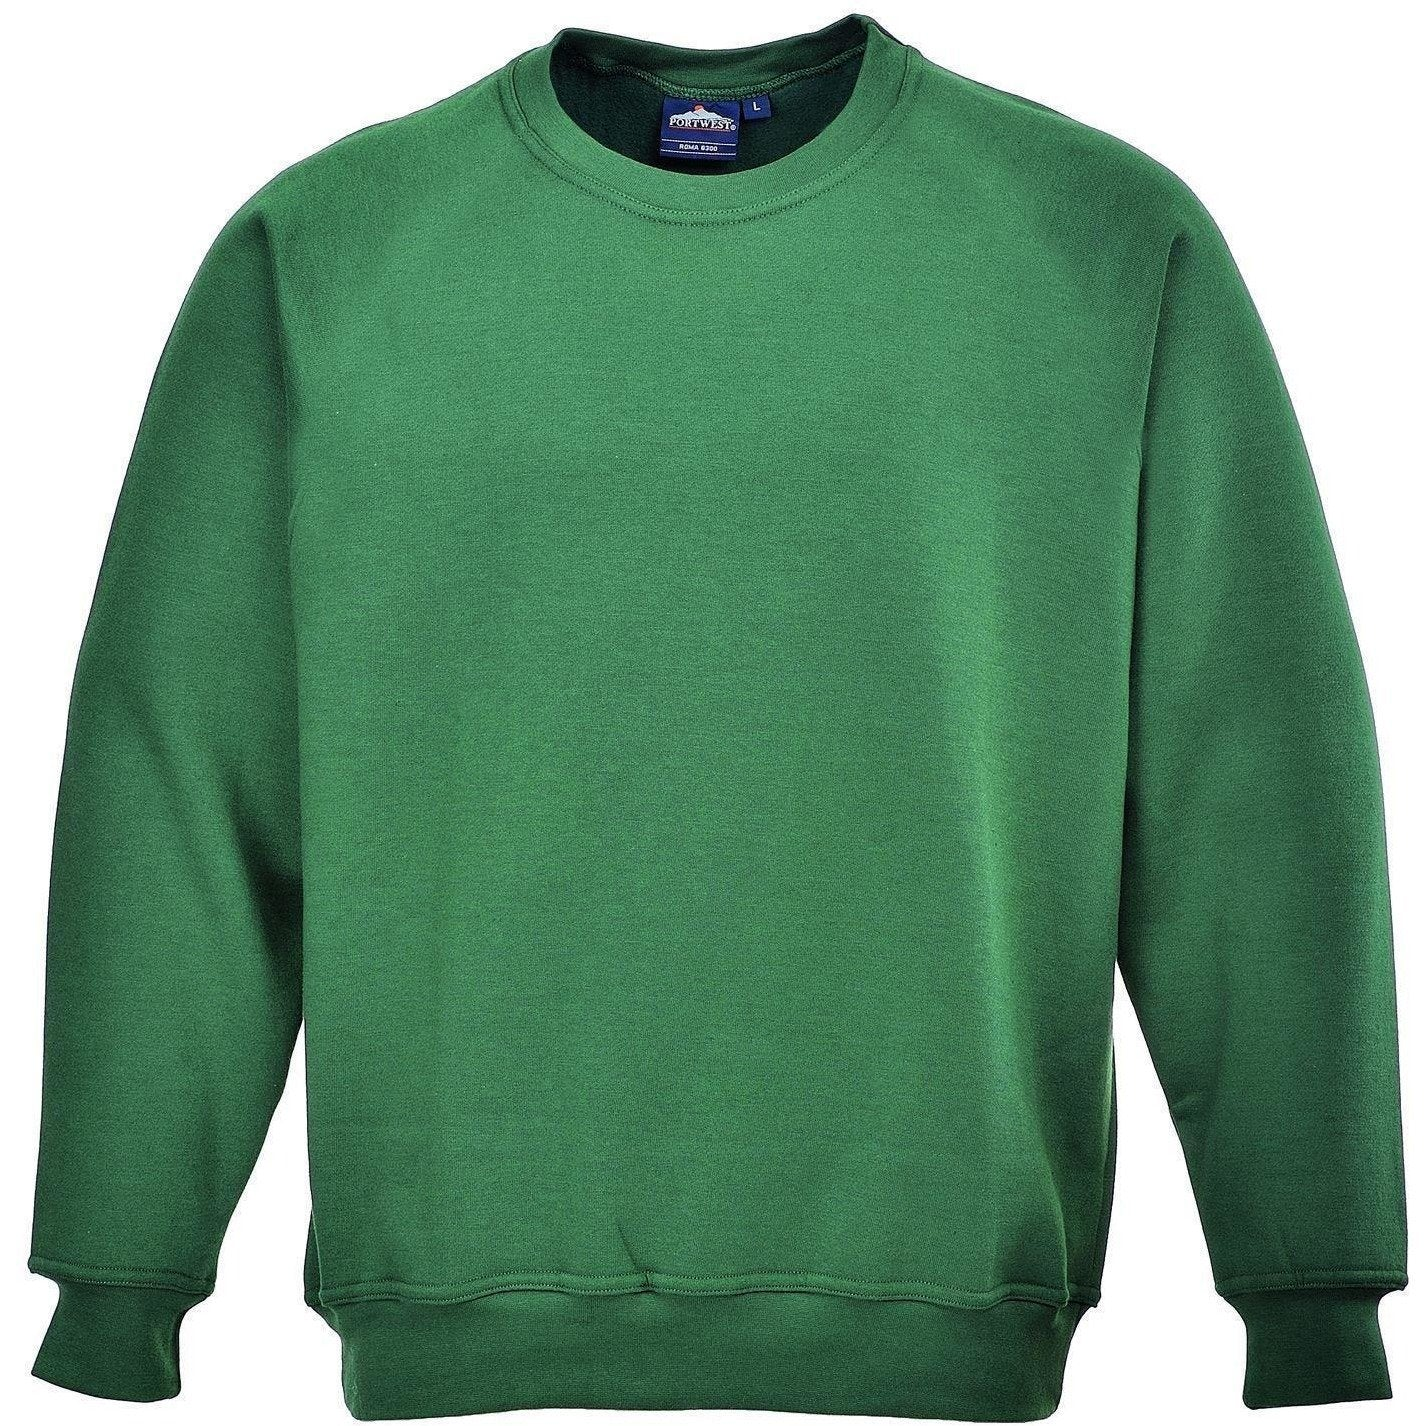 Portwest Toledo Sweatshirt CP20 - reid outdoors